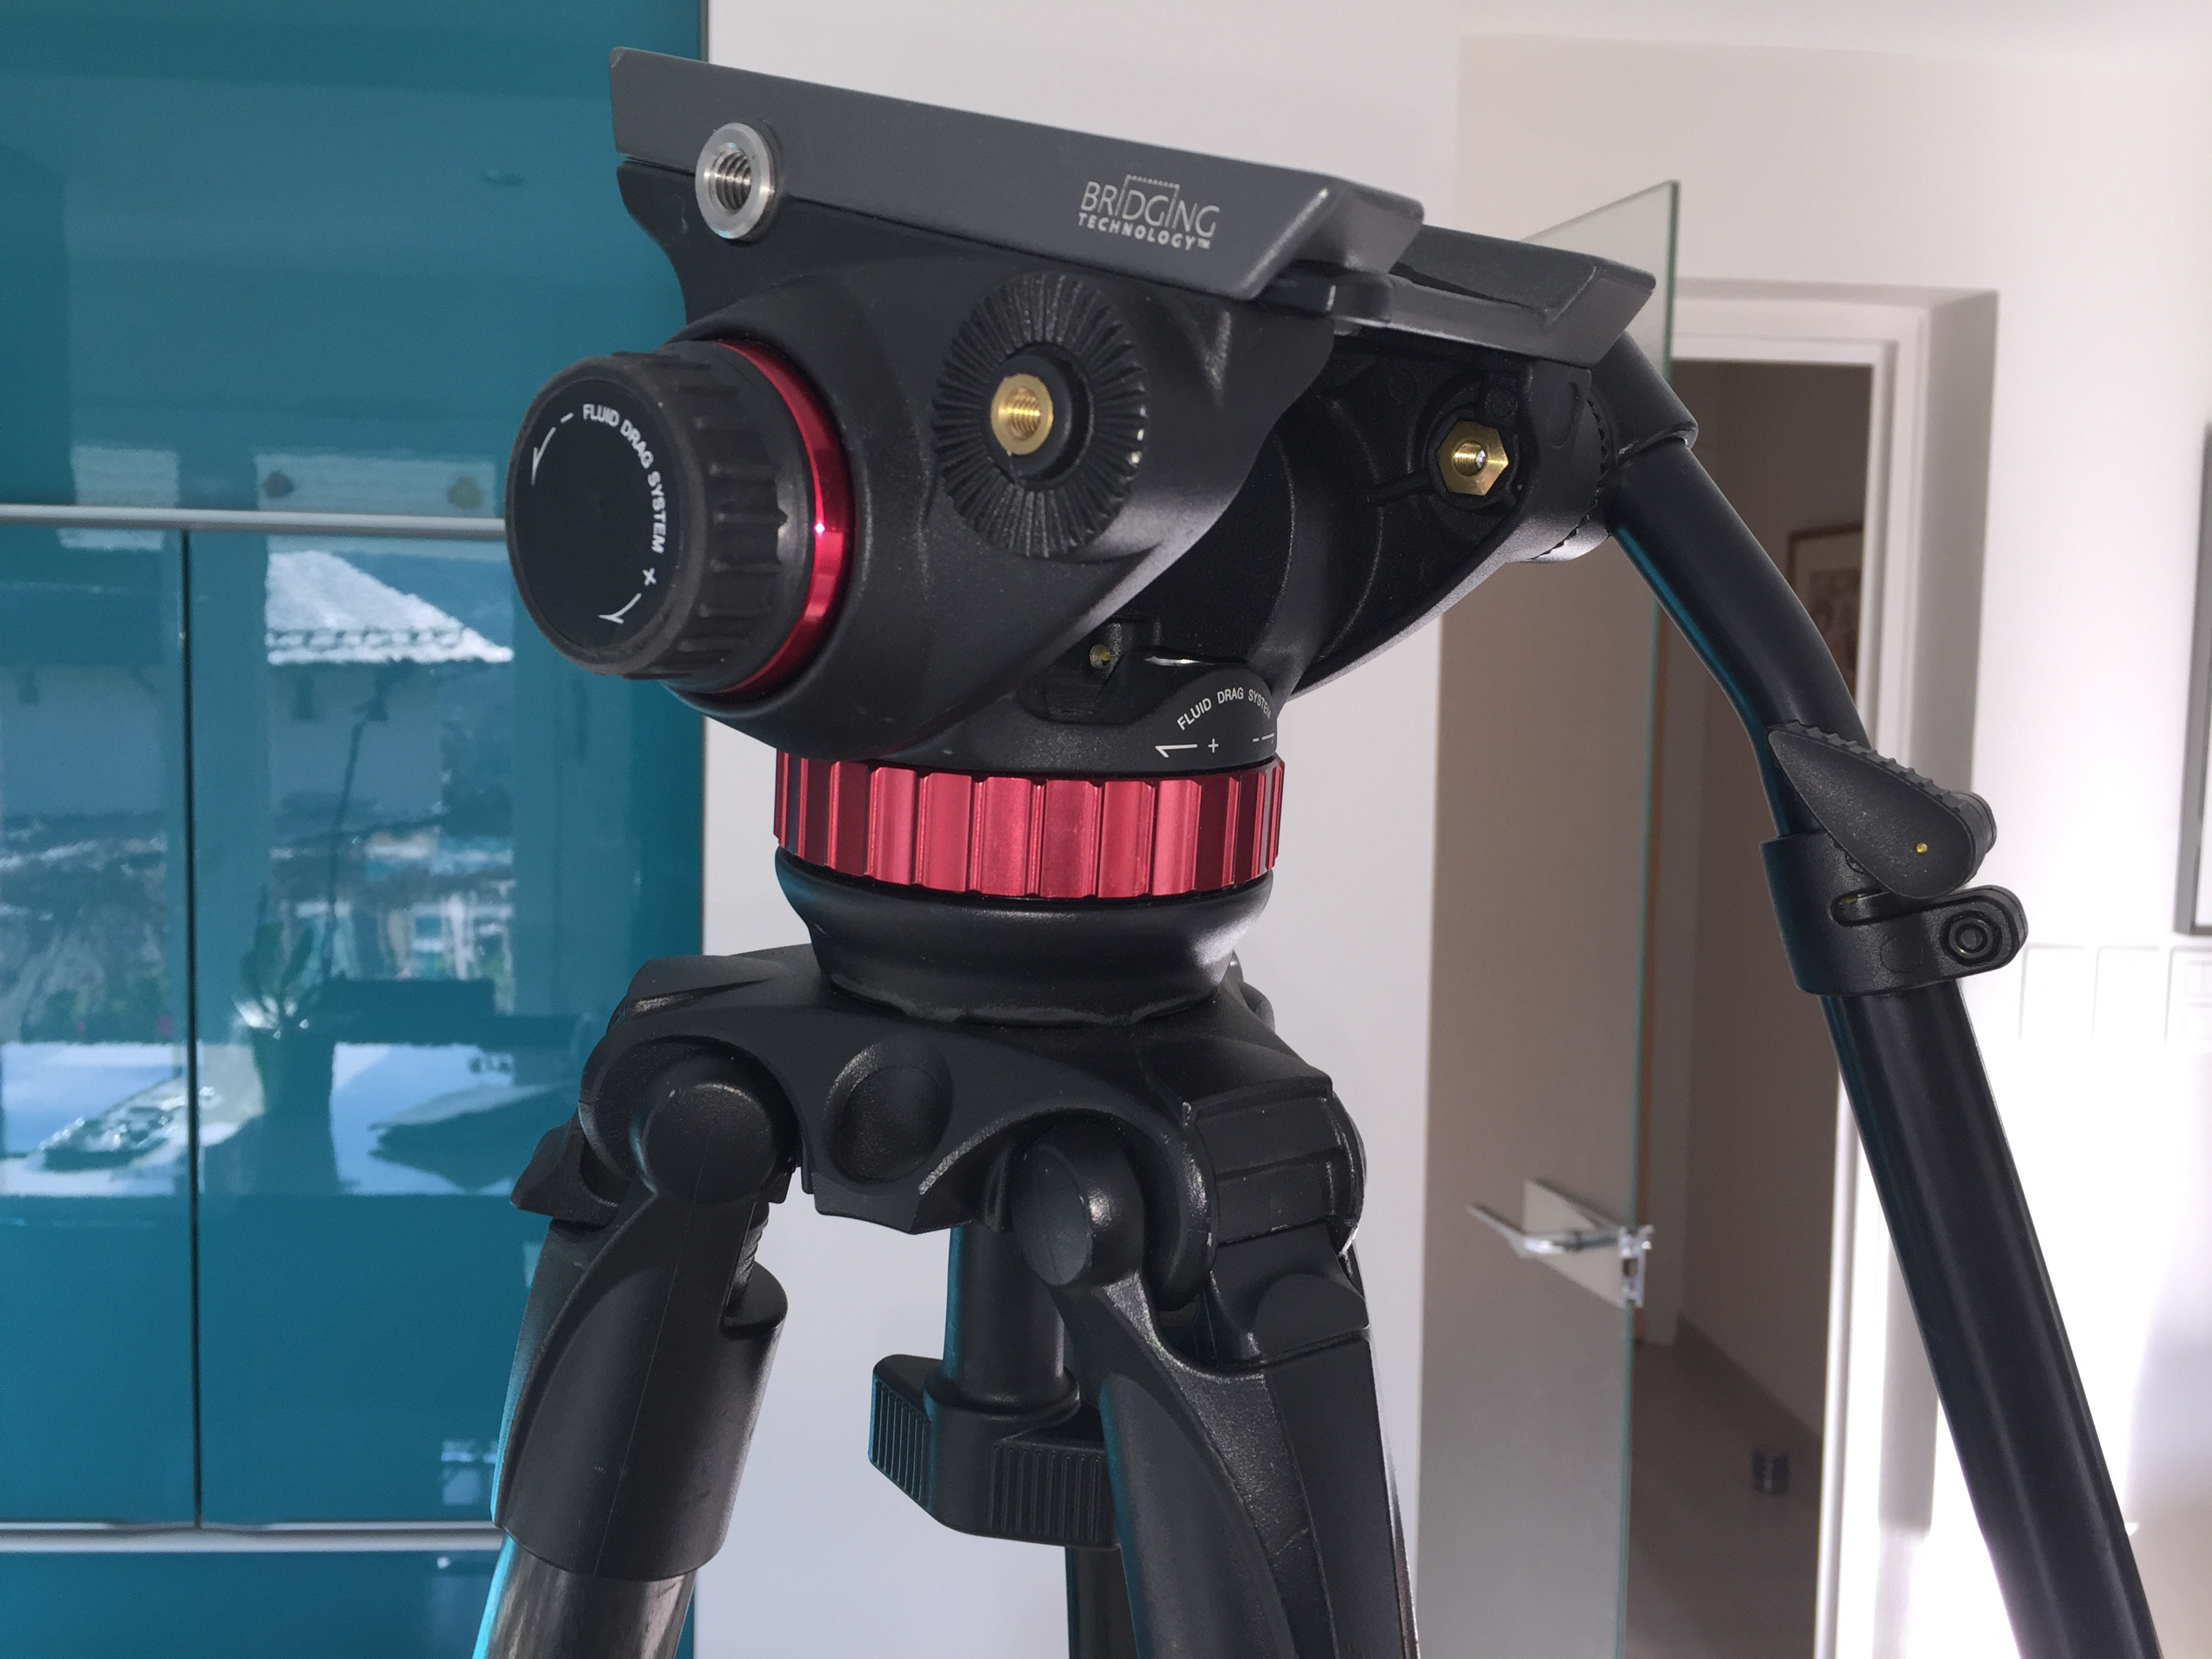 Pied Manfrotto